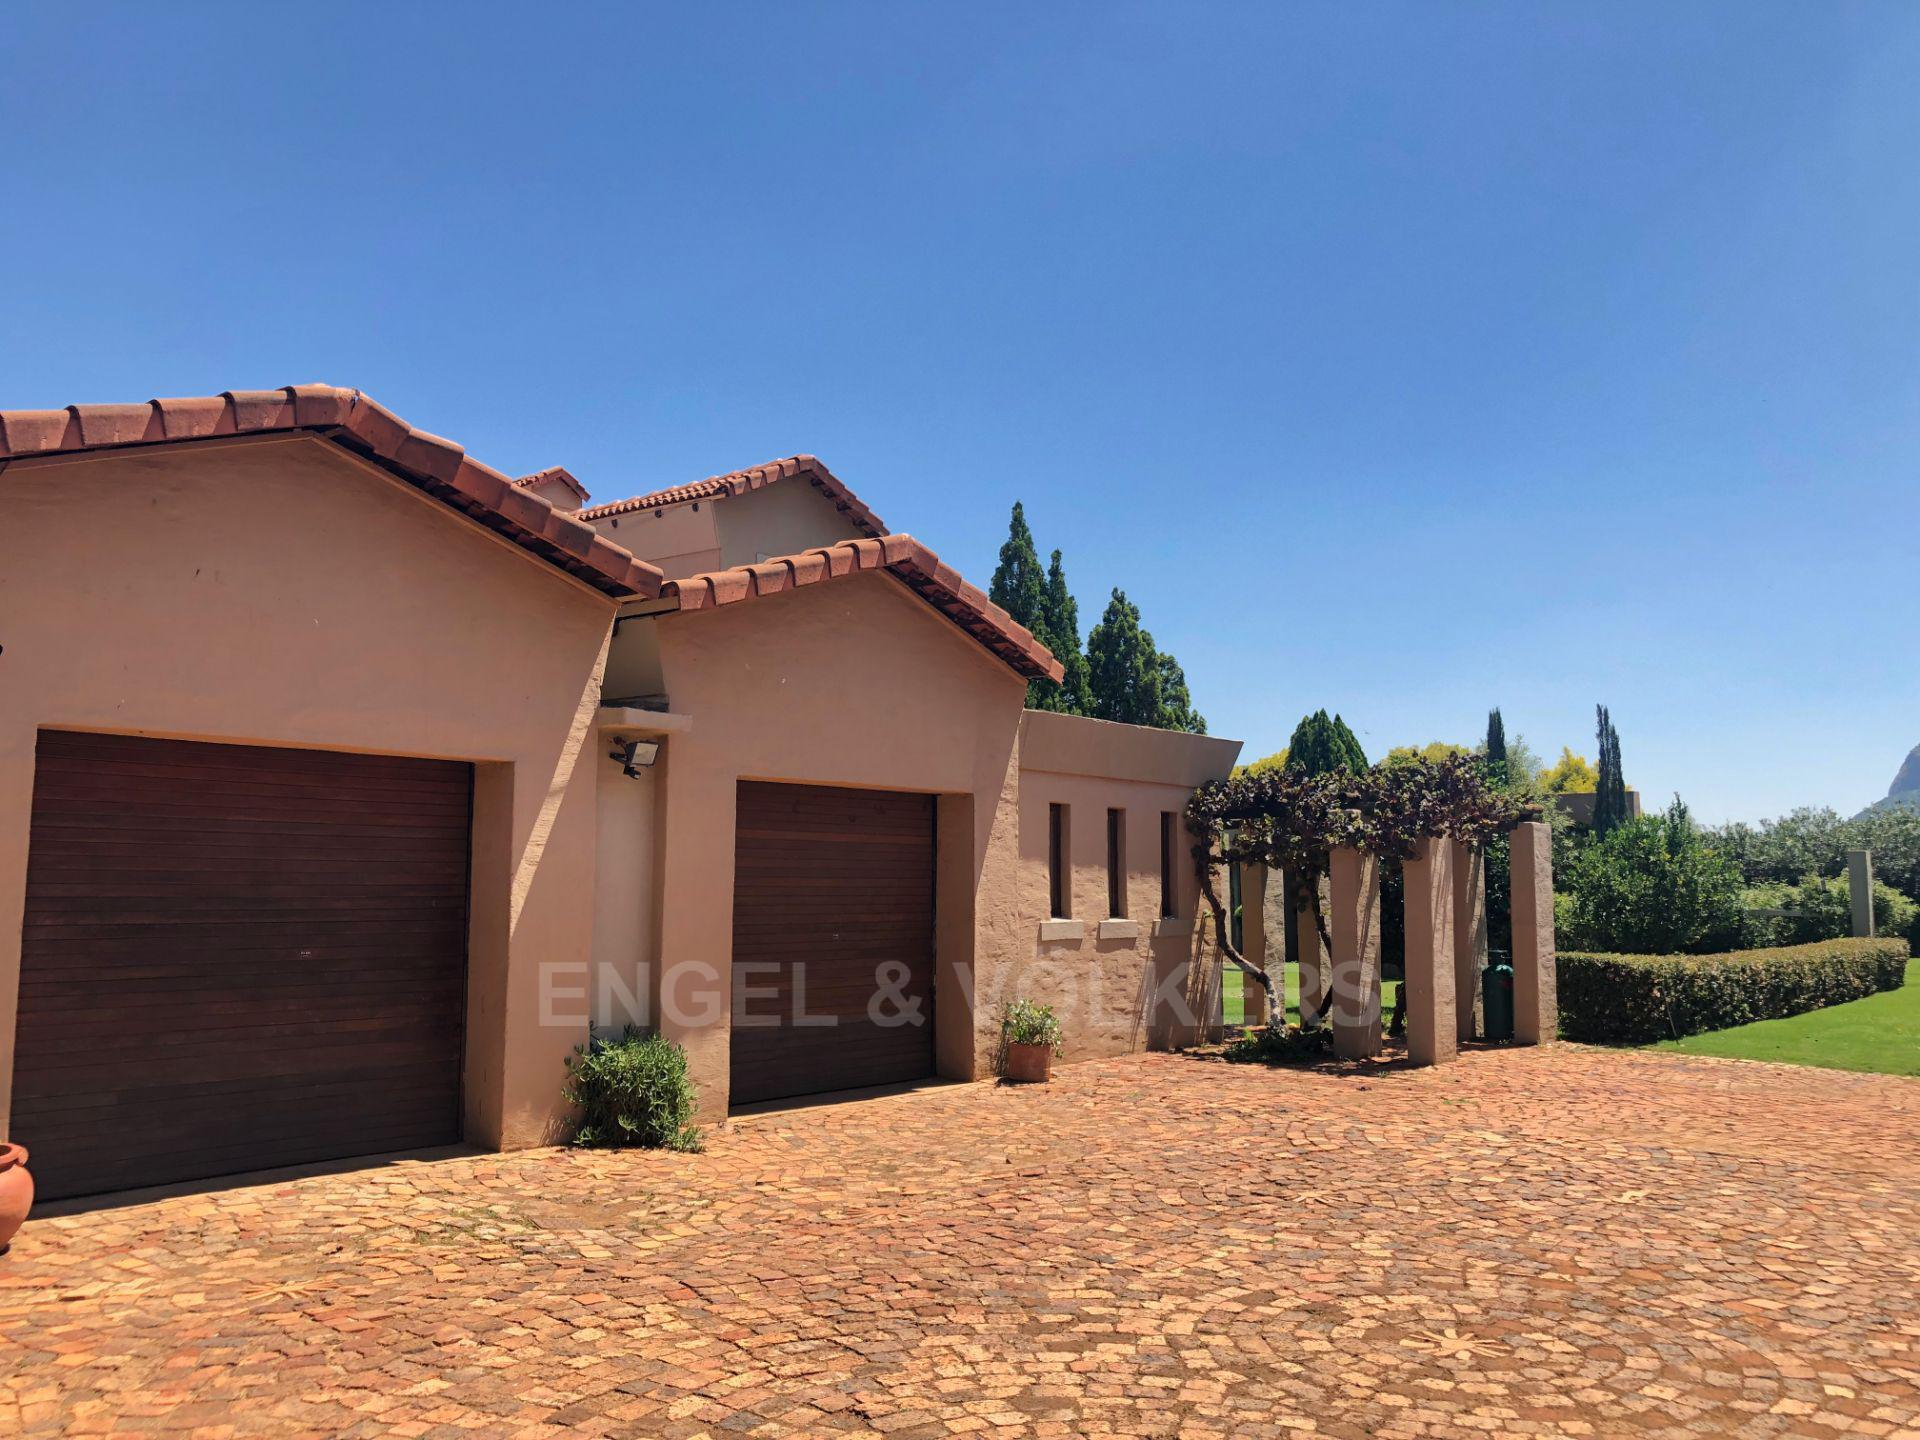 House in Magaliesview Estate - Double garage